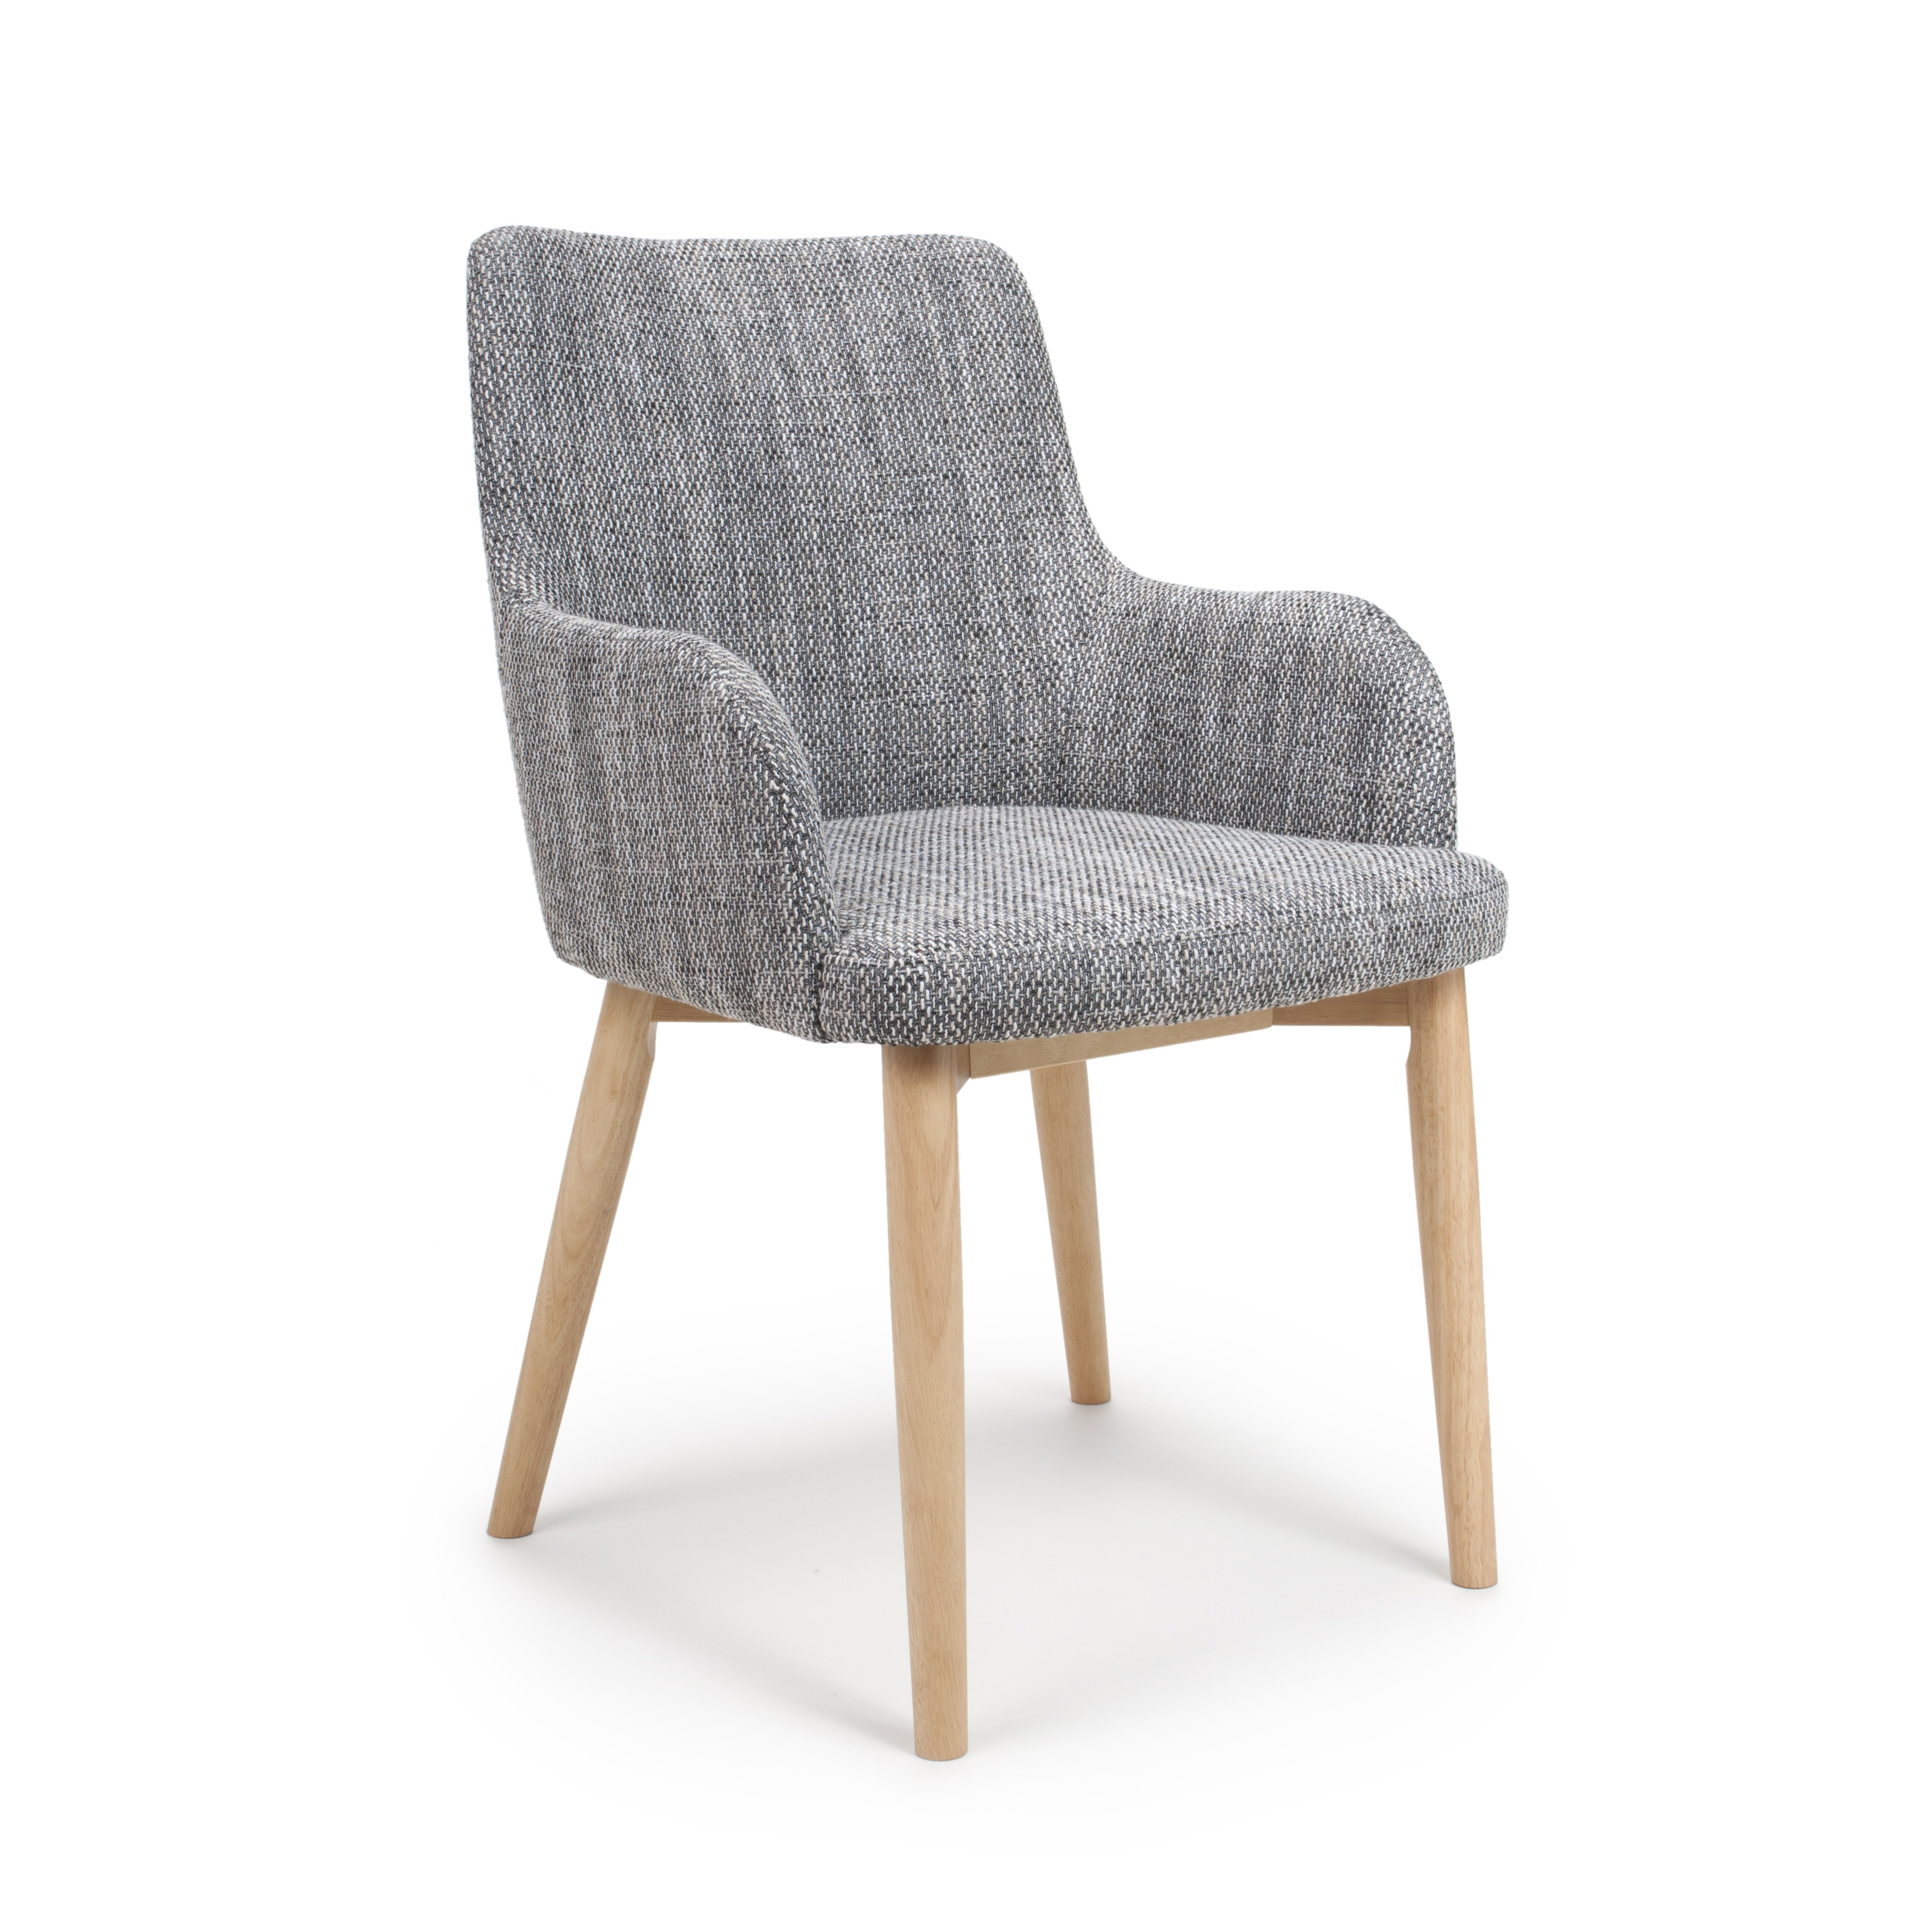 Sidcup Grey Tweed Fabric Modern Dining Chairs  Grey